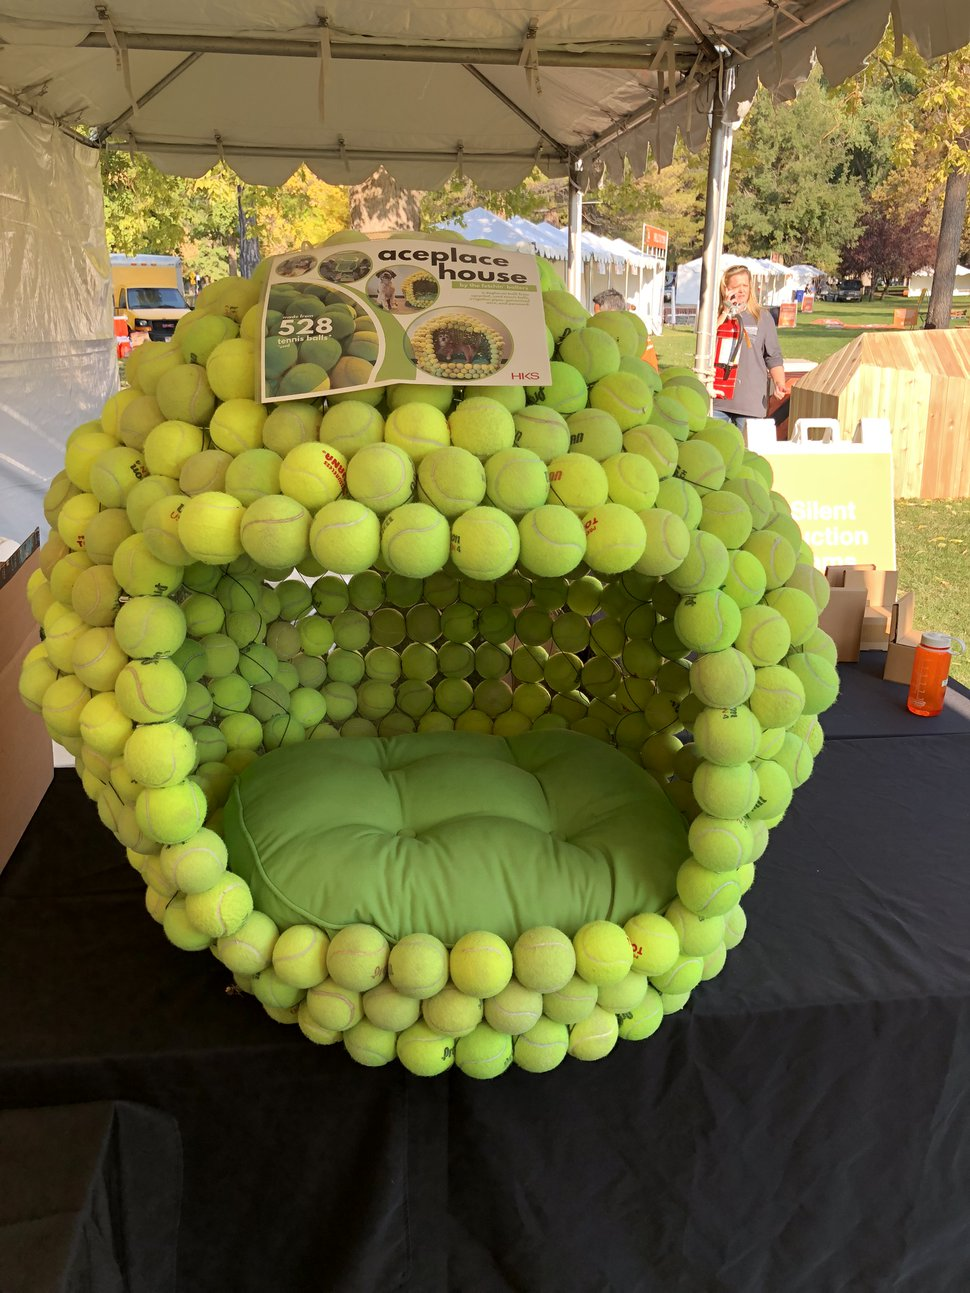 (Jeffrey Tuft | Courtesy of Architectural Nexus) A doghouse made from tennis balls was one of the entries of the inaugural Barkitecture Doghouse Competition. Entries in this year's competition will be on display Saturday, Oct. 12, 2019, during the Strut Your Mutt event in Salt Lake City's Liberty Park.